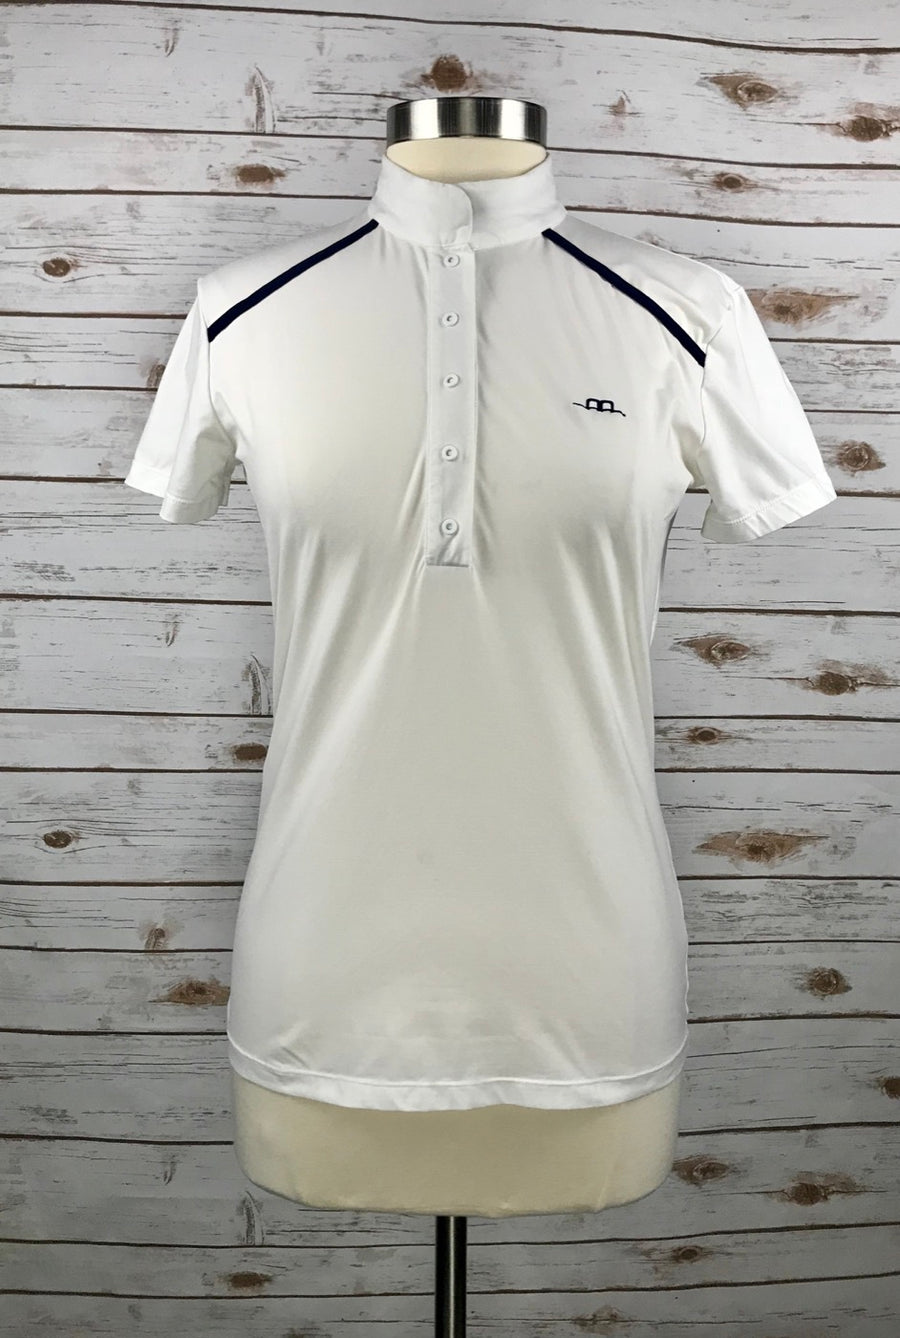 Alessandro Albanese Rio Competition Polo in White/Navy in Women's XL - front view